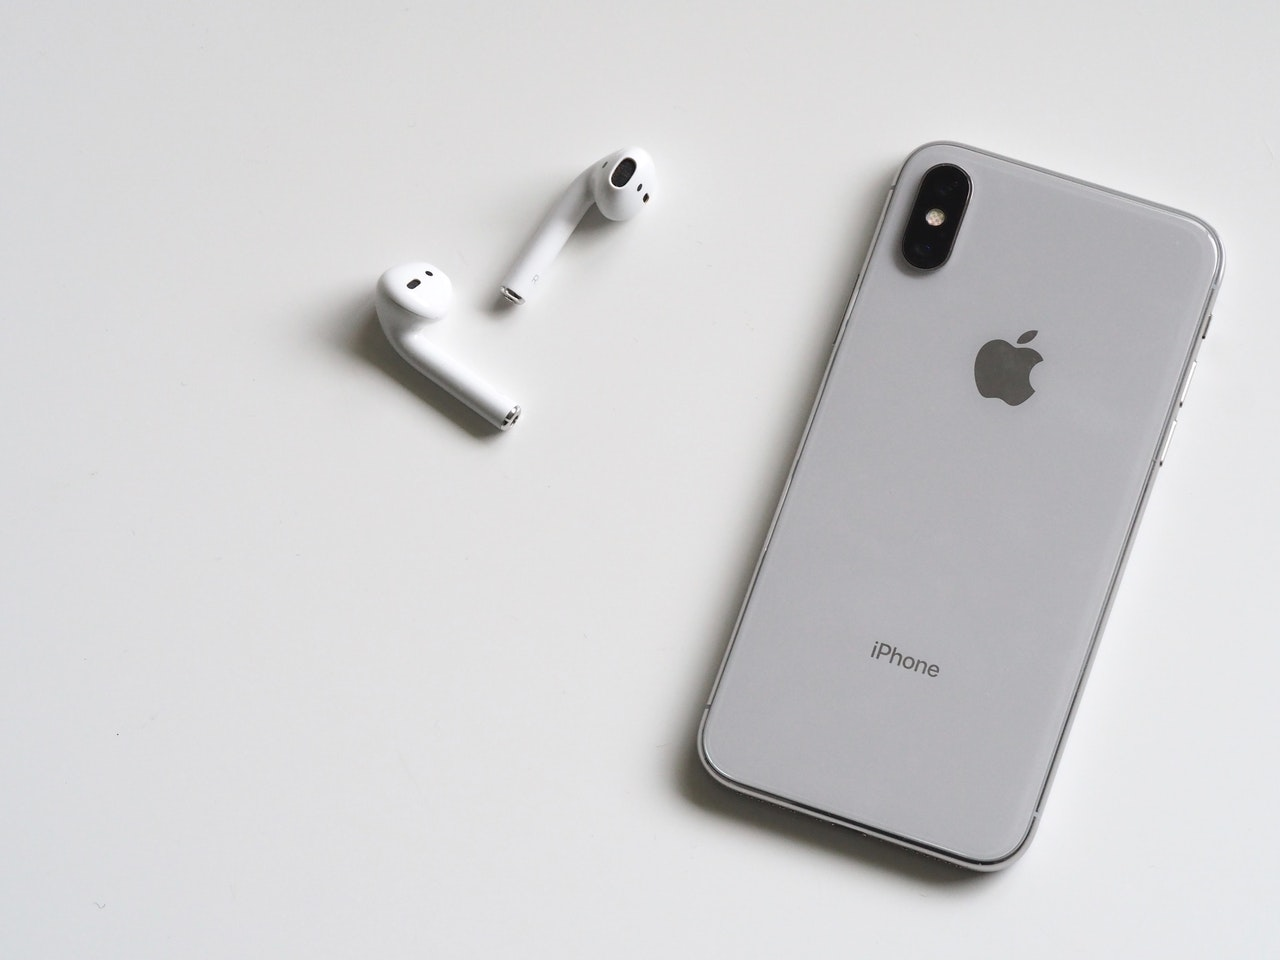 How to change the charging sound on iPhone?